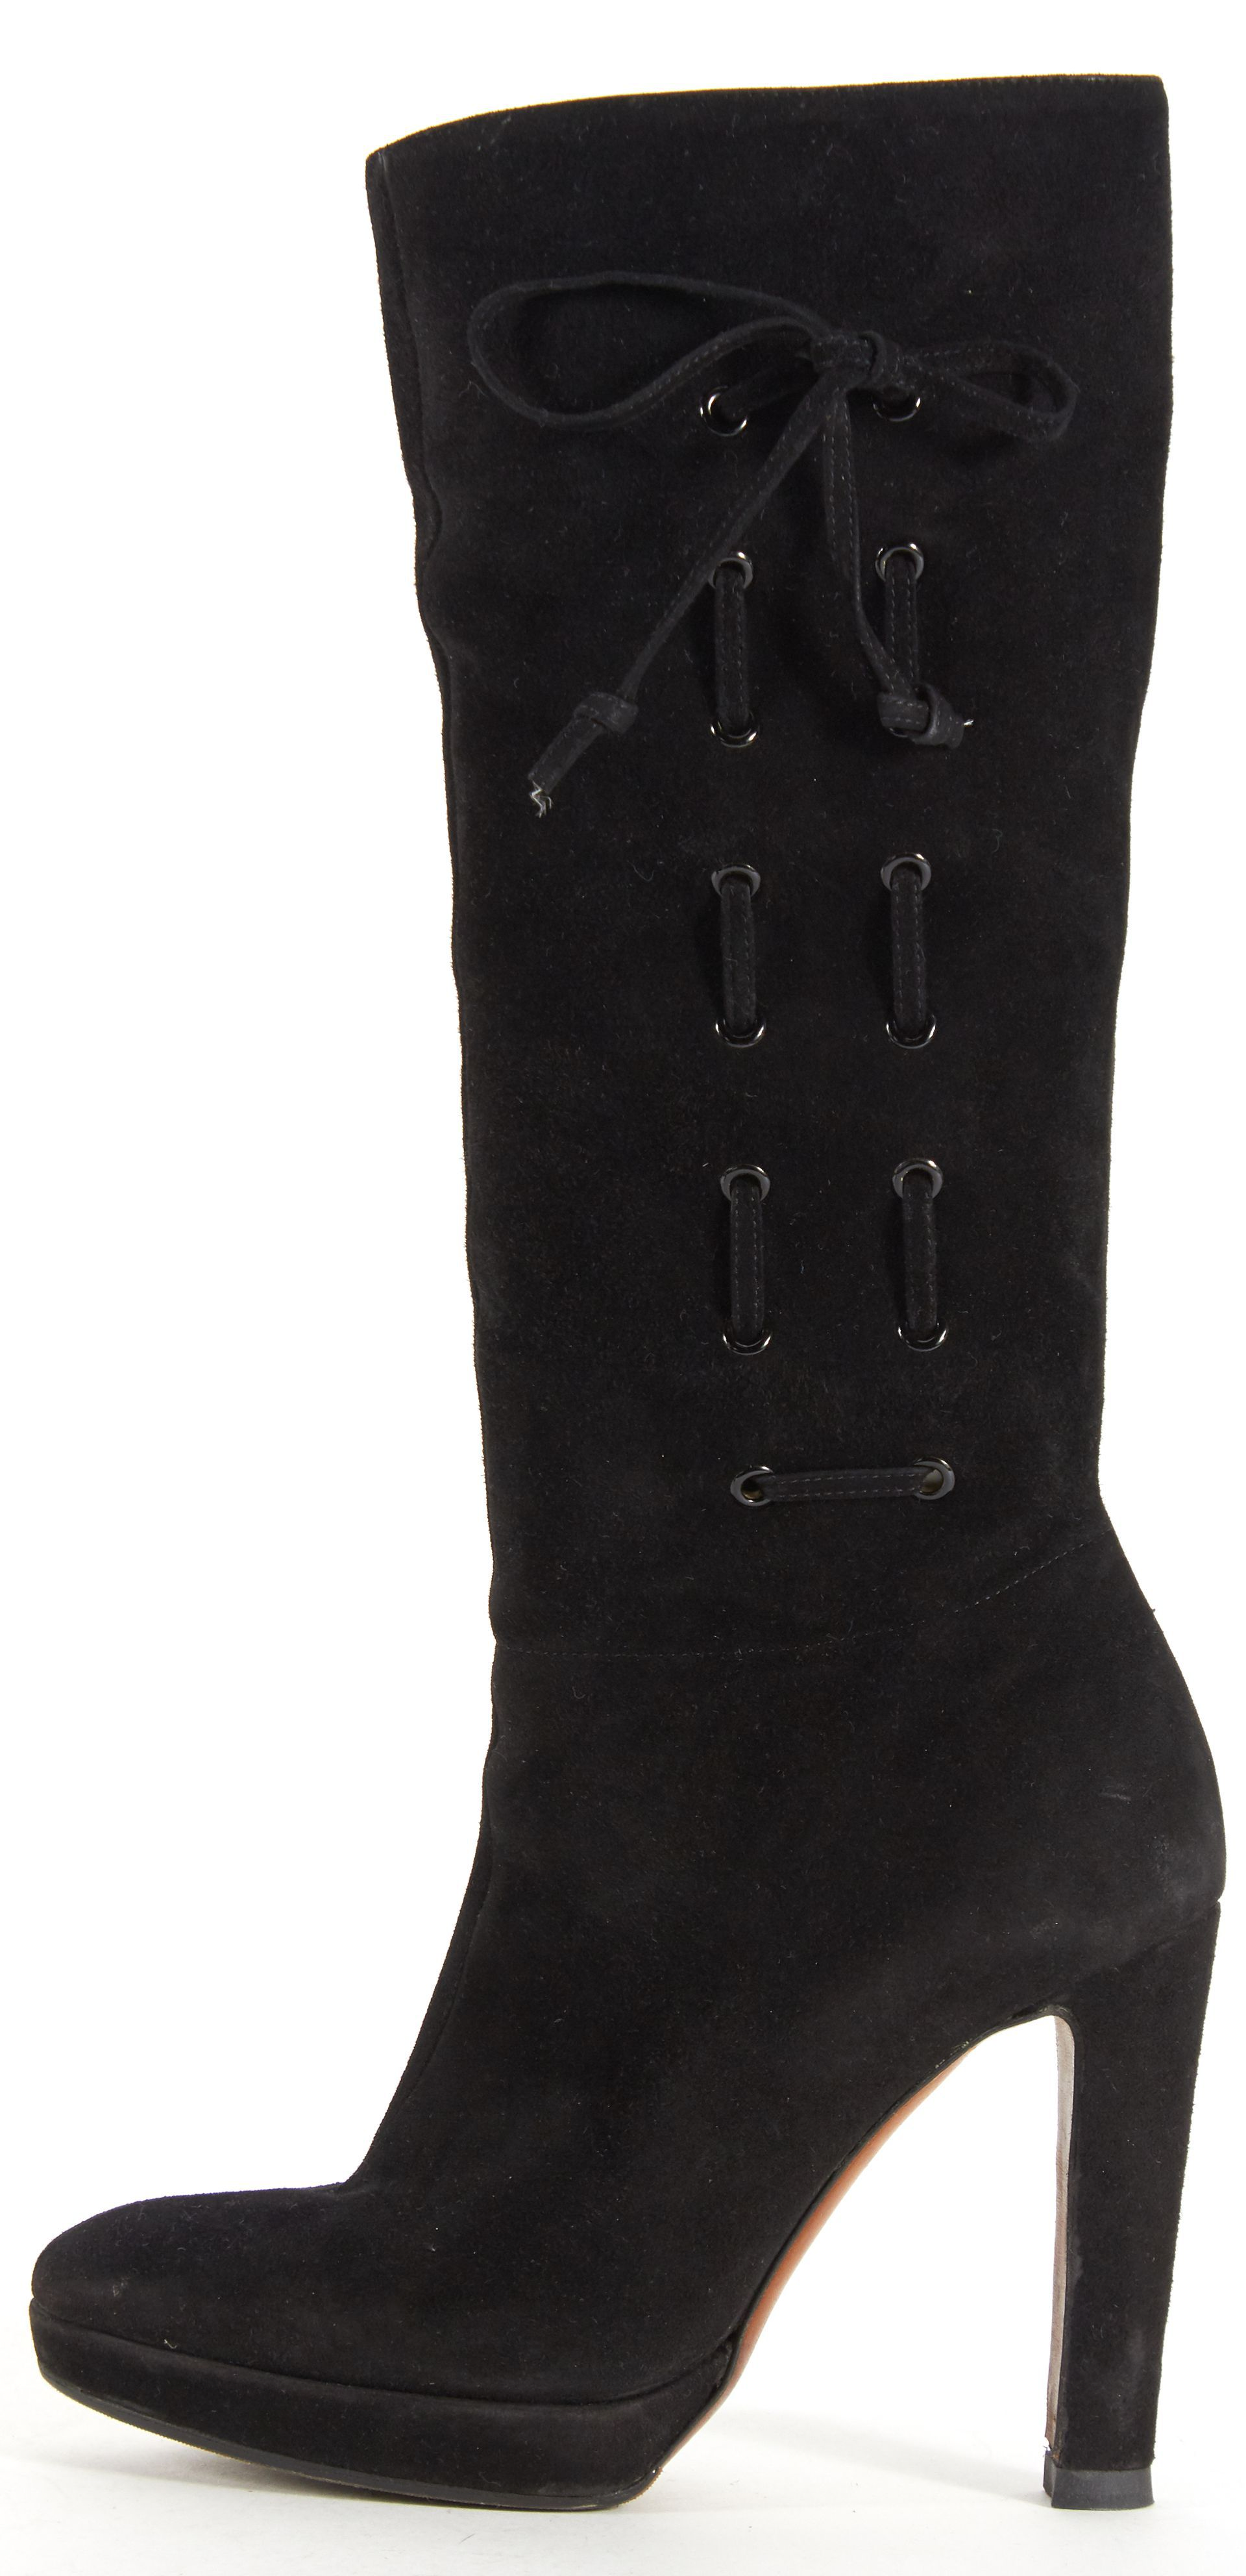 Moschino Black Suede Lace Up Heeled Knee-High Boots | Material World